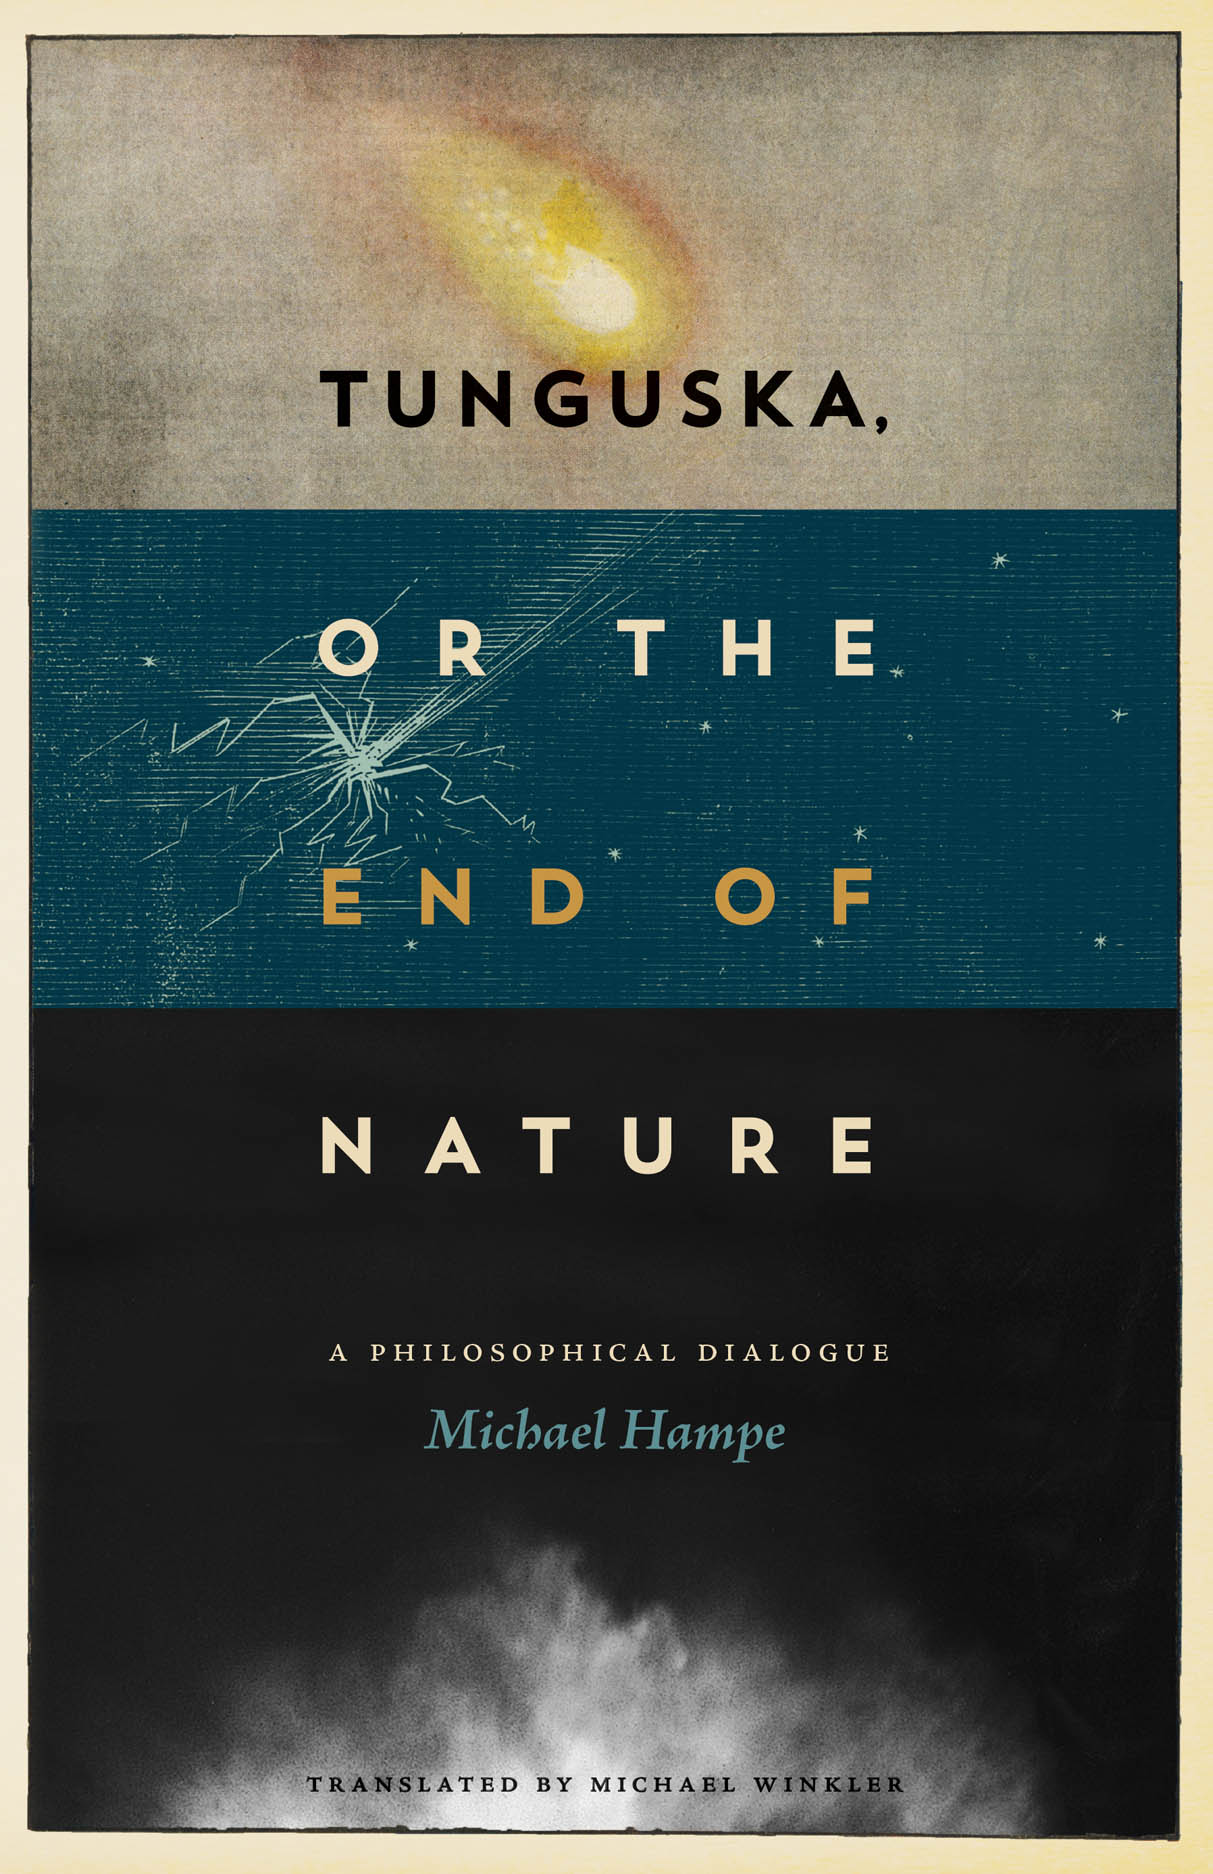 Tunguska, or the End of Nature